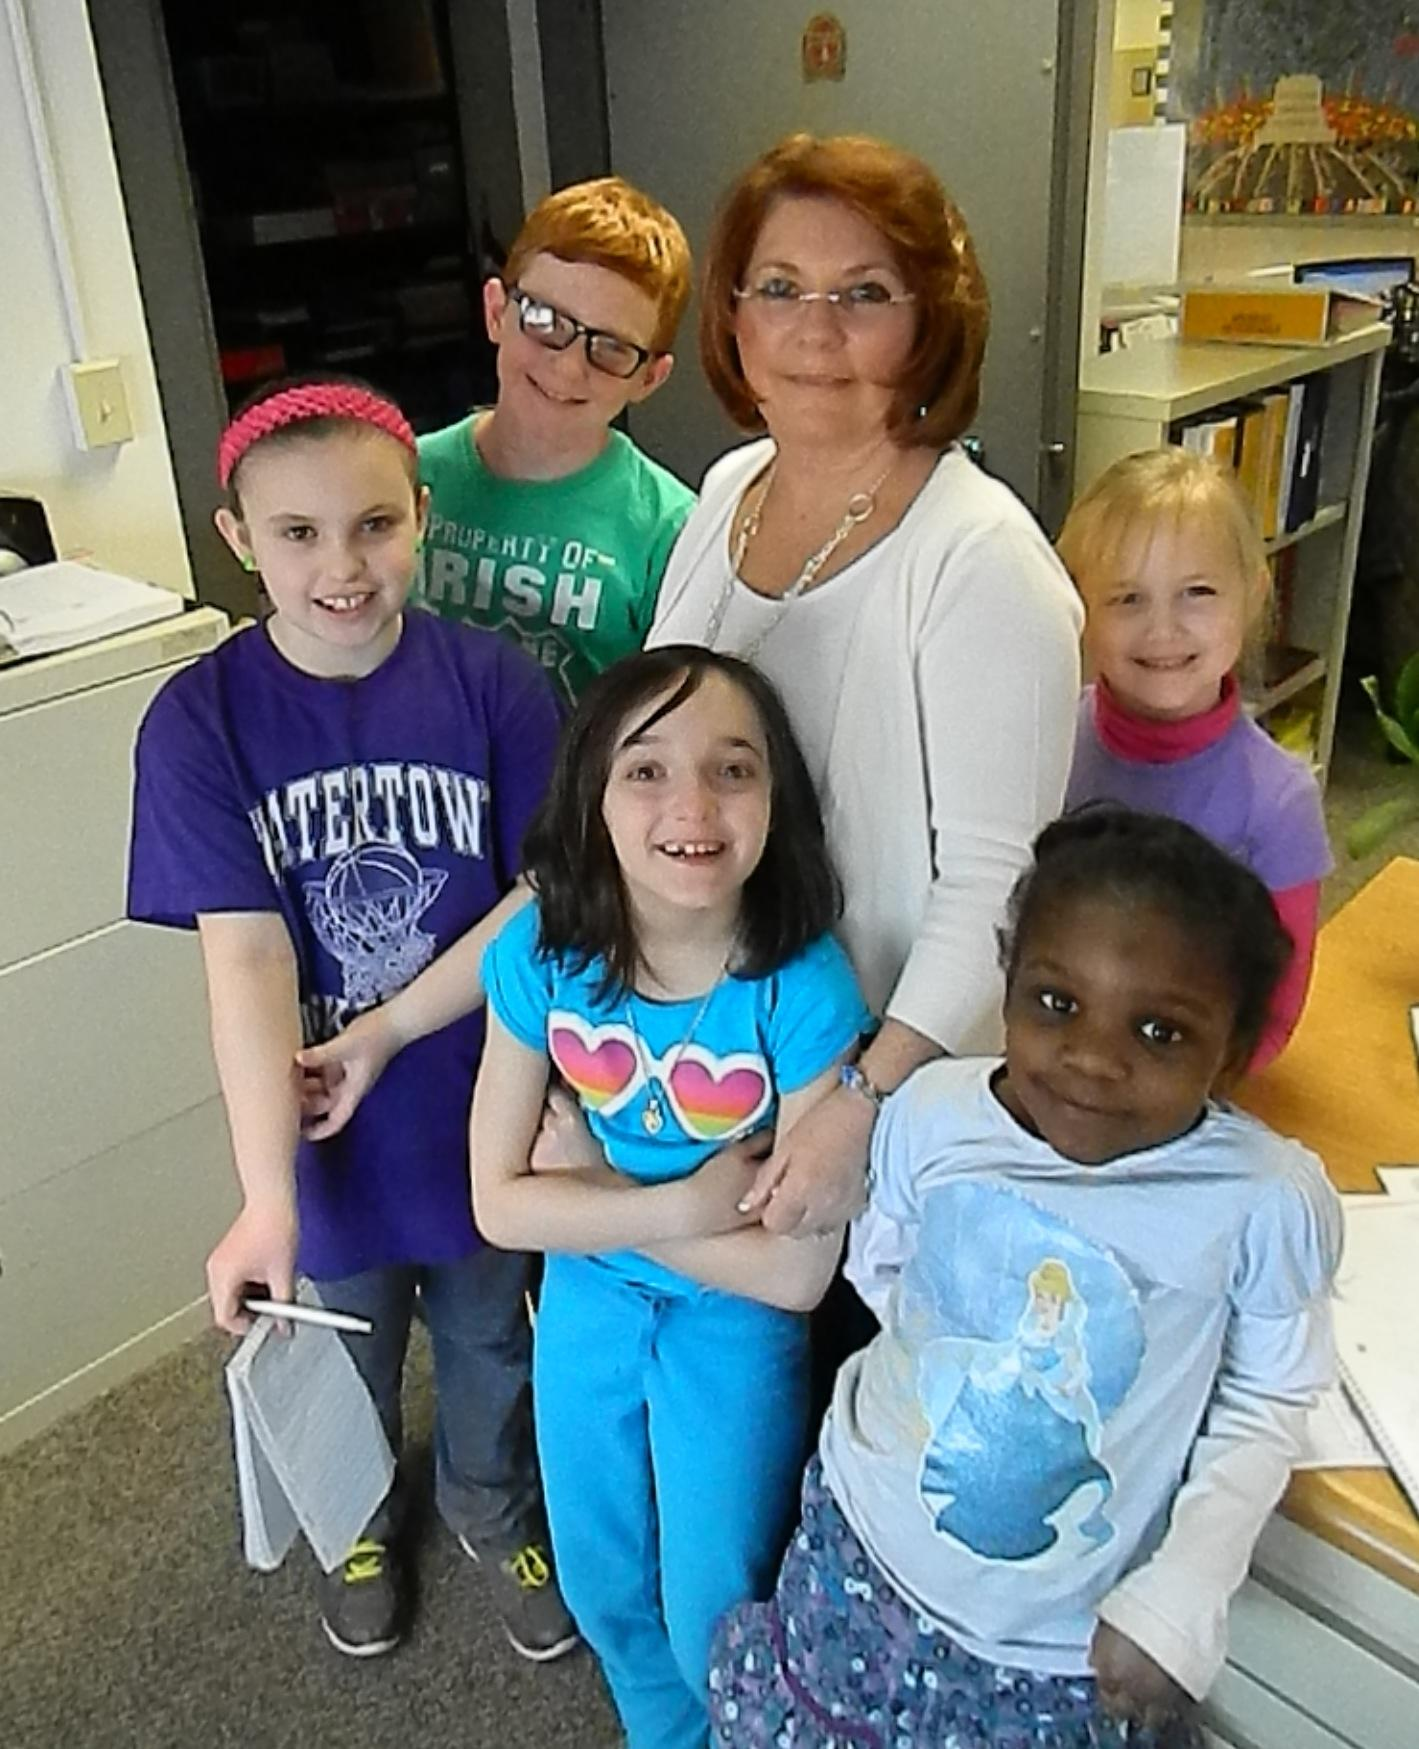 Terri Caporiccio (center) is surrounded by reporters from the Cunniff Kids News. She will be competing in the